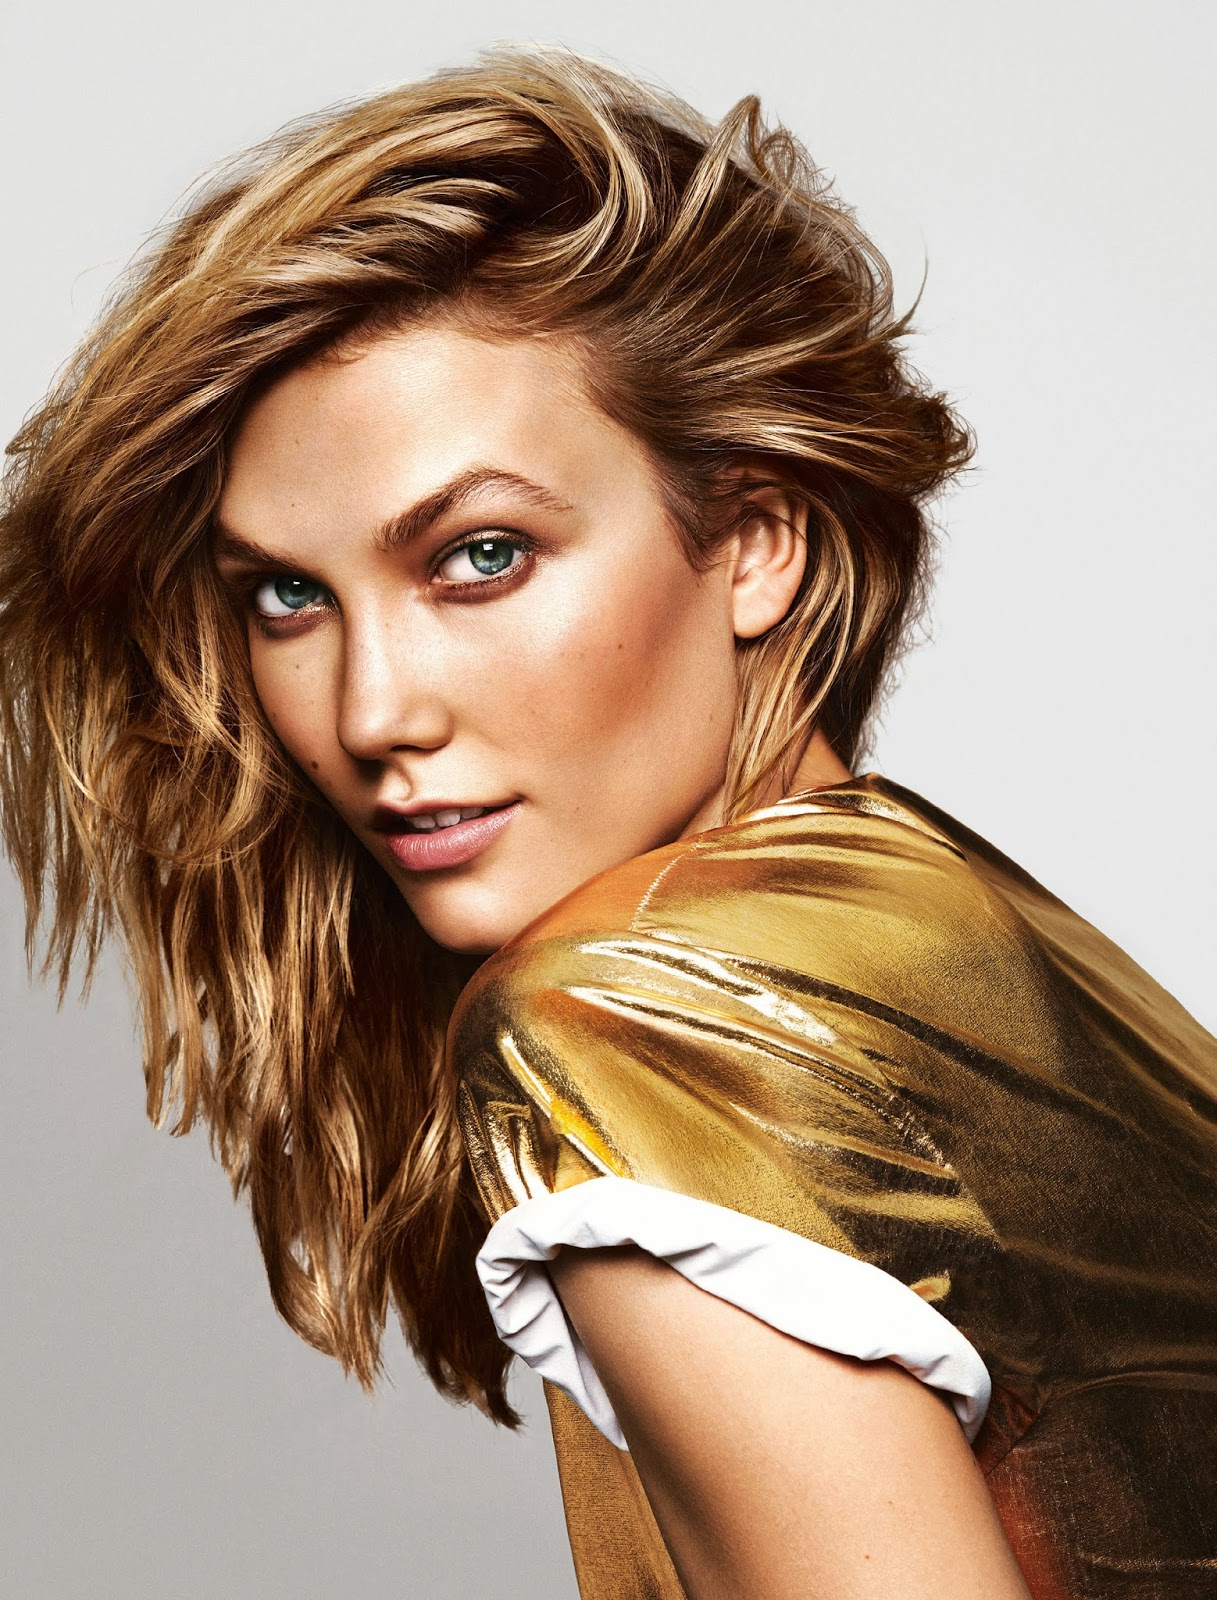 a-guide-to-cool-karlie-kloss-photo-folkr-mode-1